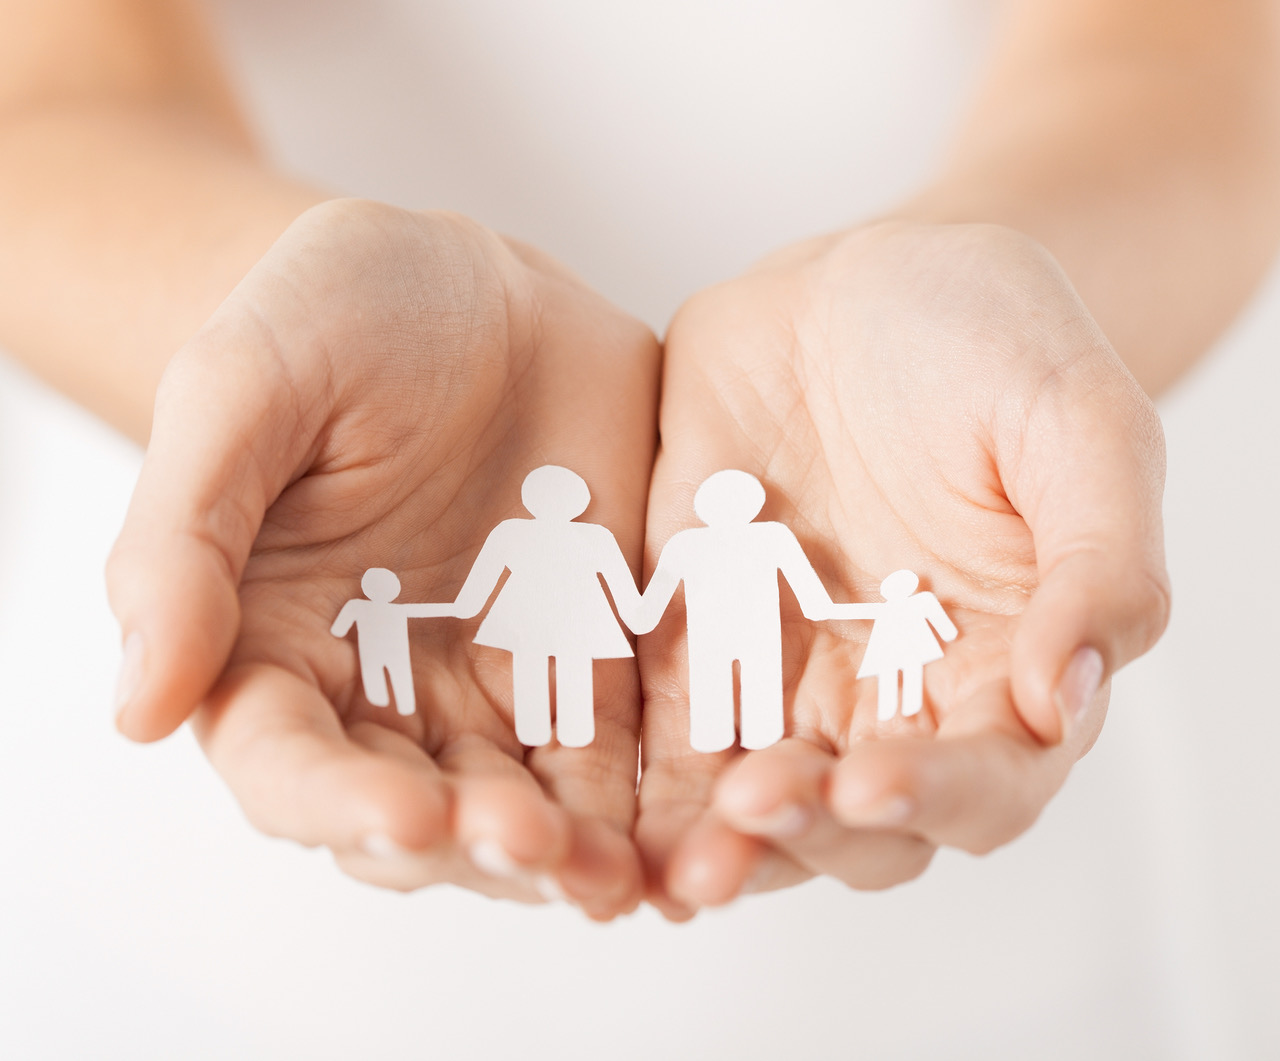 family in hands_138379763